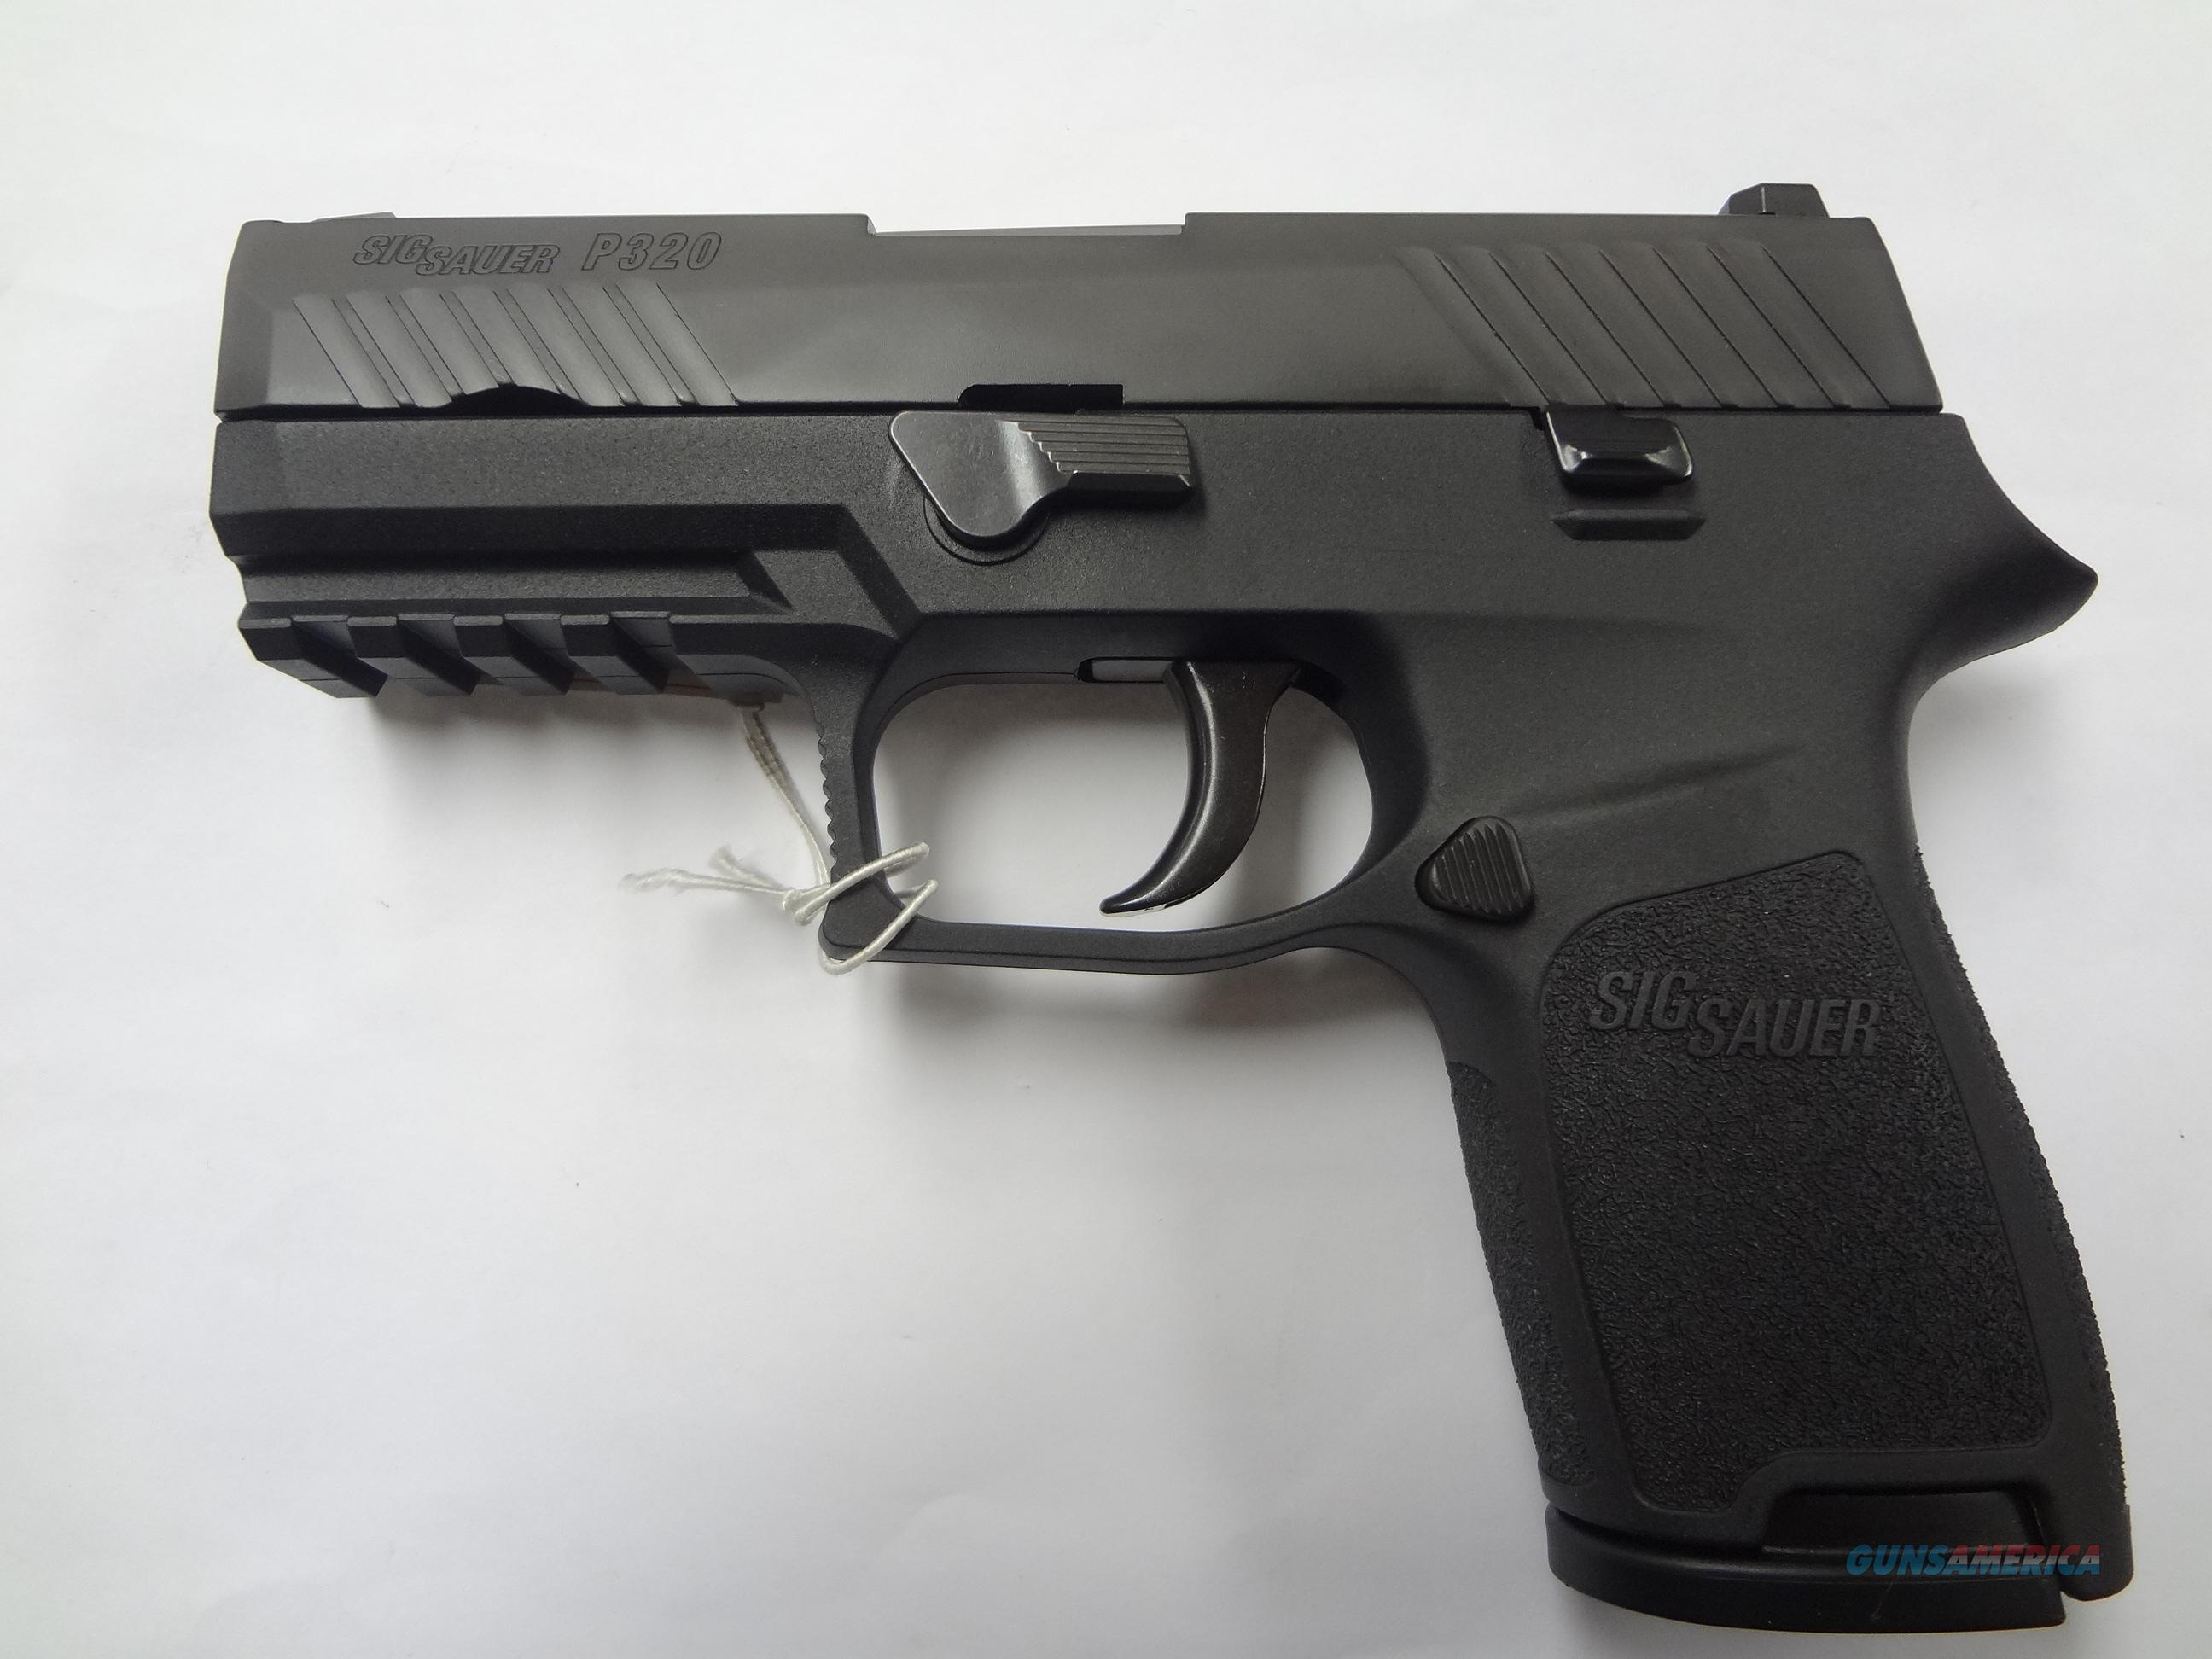 Sig Sauer P320 Carry 40S&W 13RD W/ Night Sights   Guns > Pistols > Sig - Sauer/Sigarms Pistols > Other